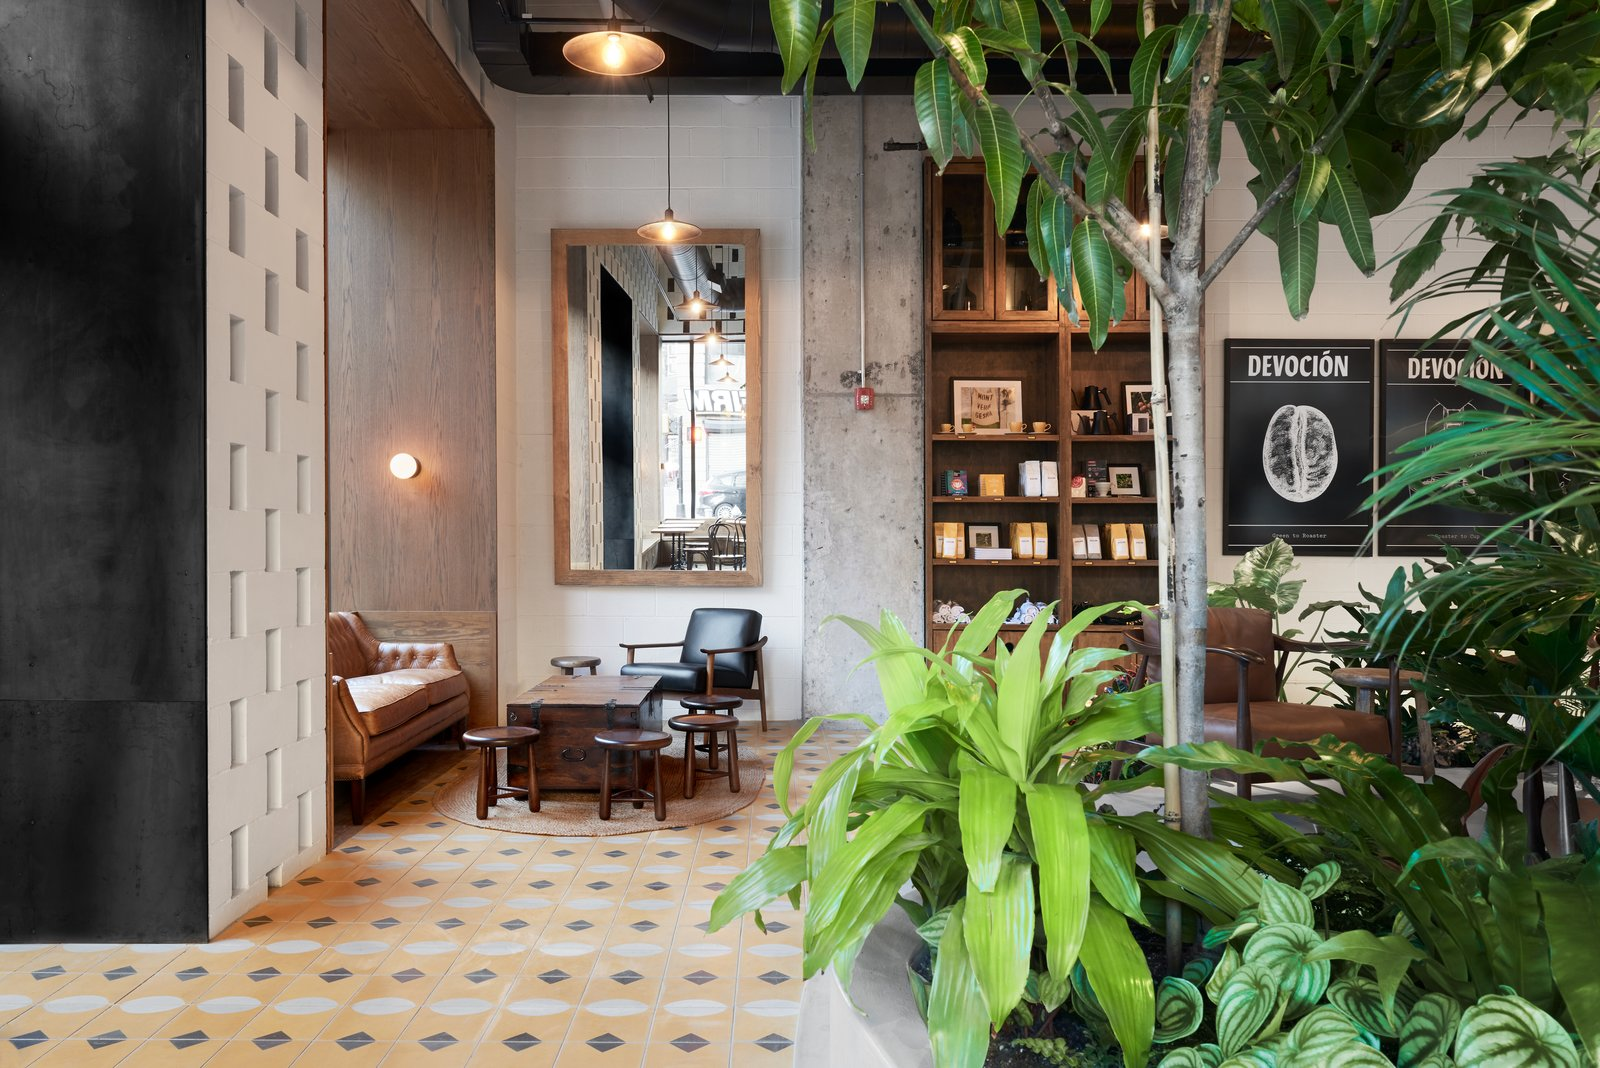 Dining Room, Pendant Lighting, Cement Tile Floor, Table, Chair, Wall Lighting, Stools, and Shelves The space offers several nooks for quiet moments.    Photo 6 of 10 in This New Brooklyn Cafe Is Brewing Up More Than Tasty Artisanal Coffee